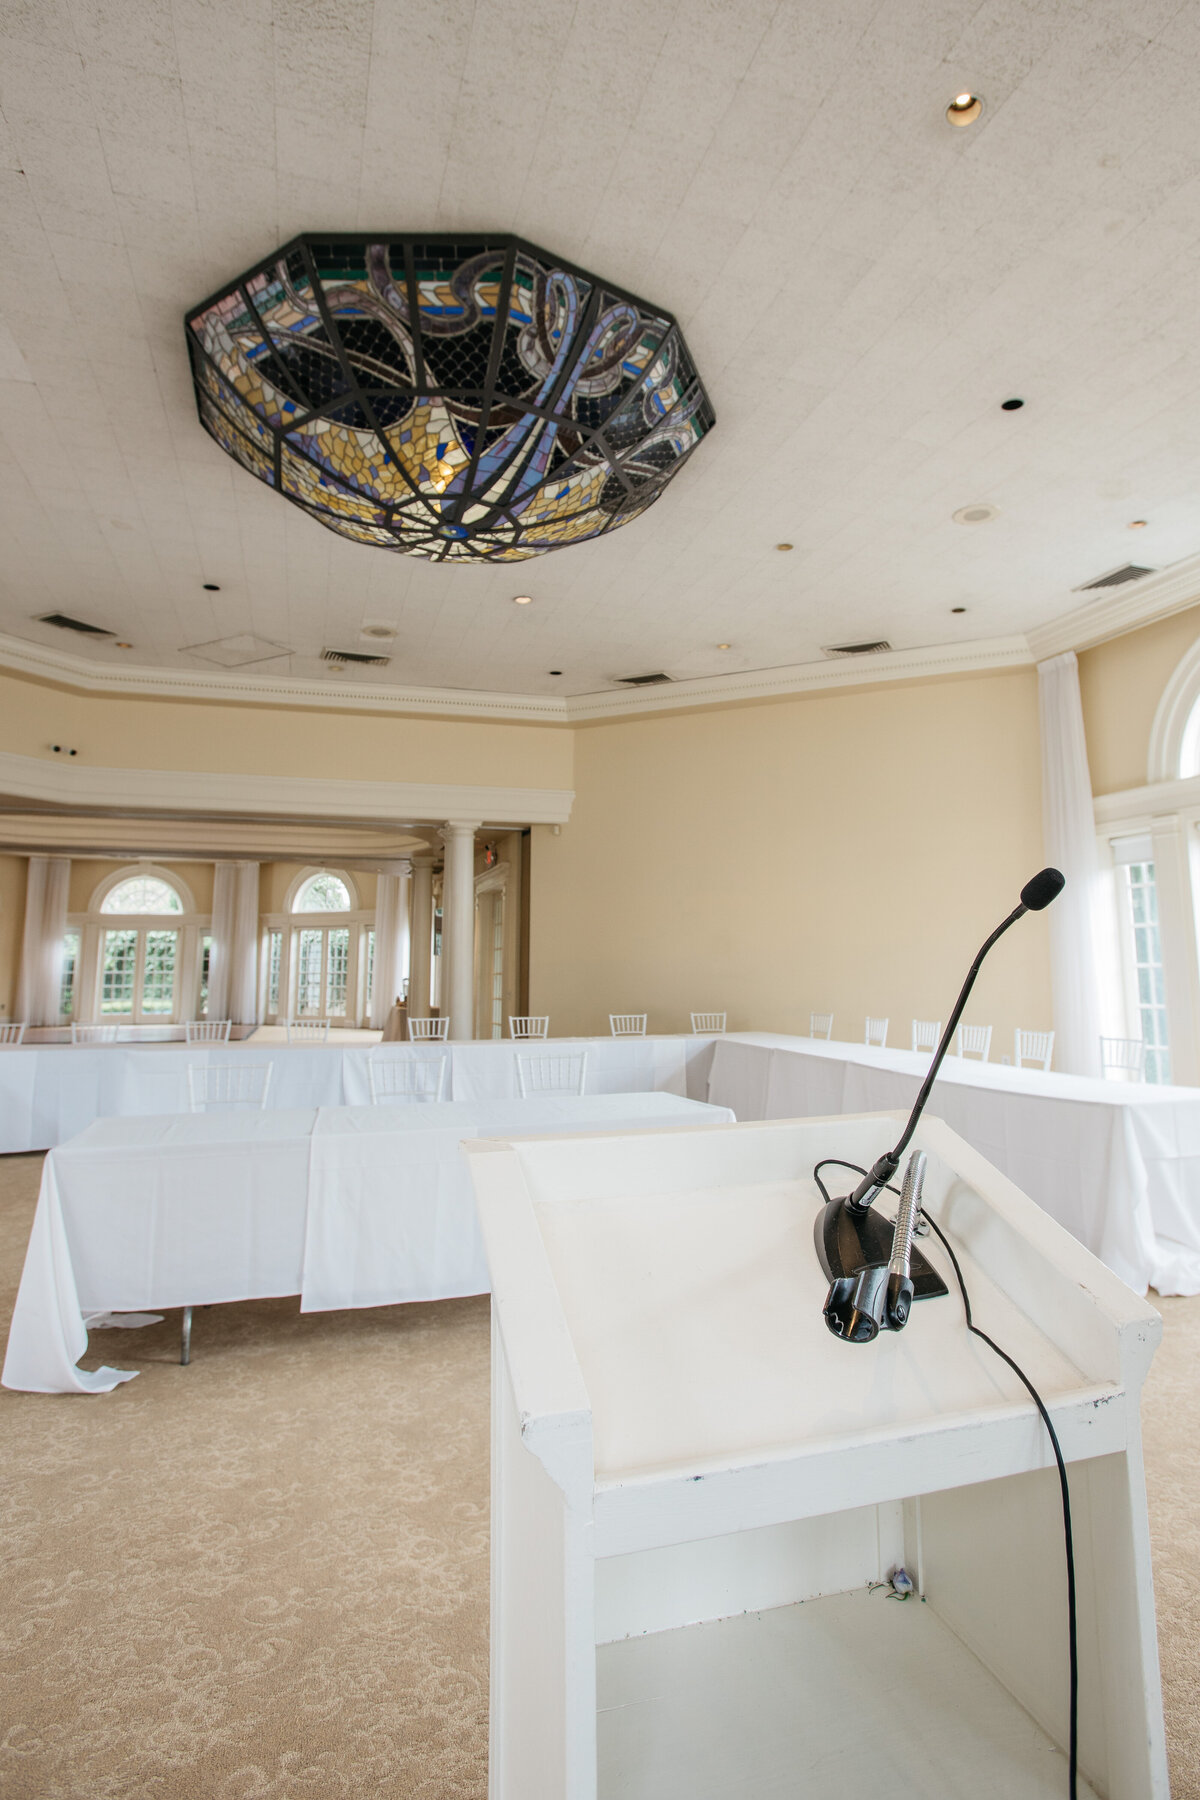 Vizcaya's Pavilion upgrades your conference room meeting space with our custom stain-glass chandelier and elegant room design.